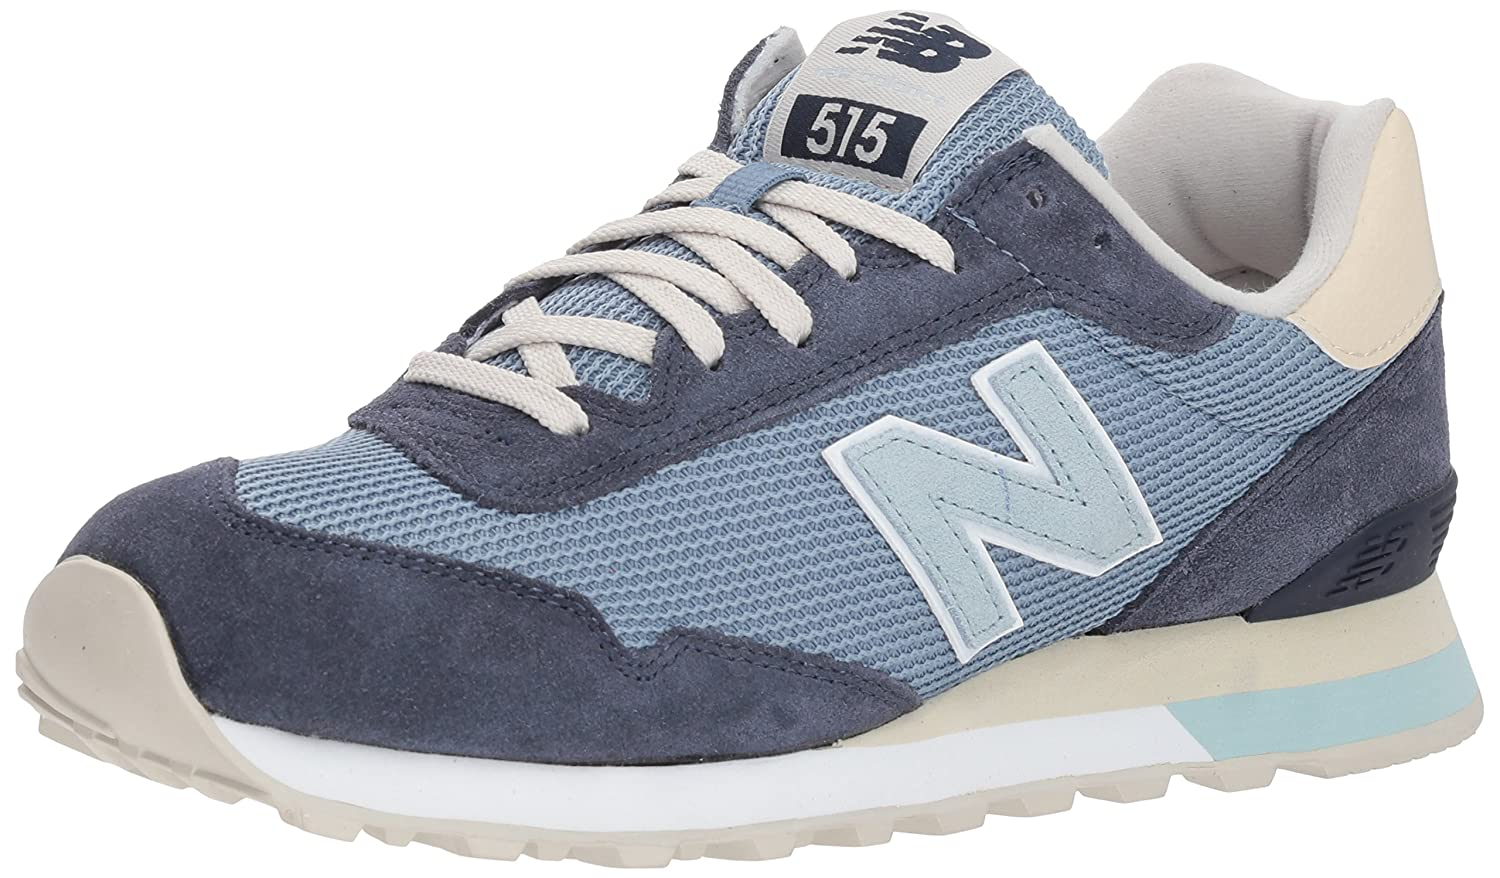 Gentleman/Lady New Balance gift Men's B075247YCW Fashion Sneakers Ideal gift Balance for all occasions high quality Exquisite processing ea4224